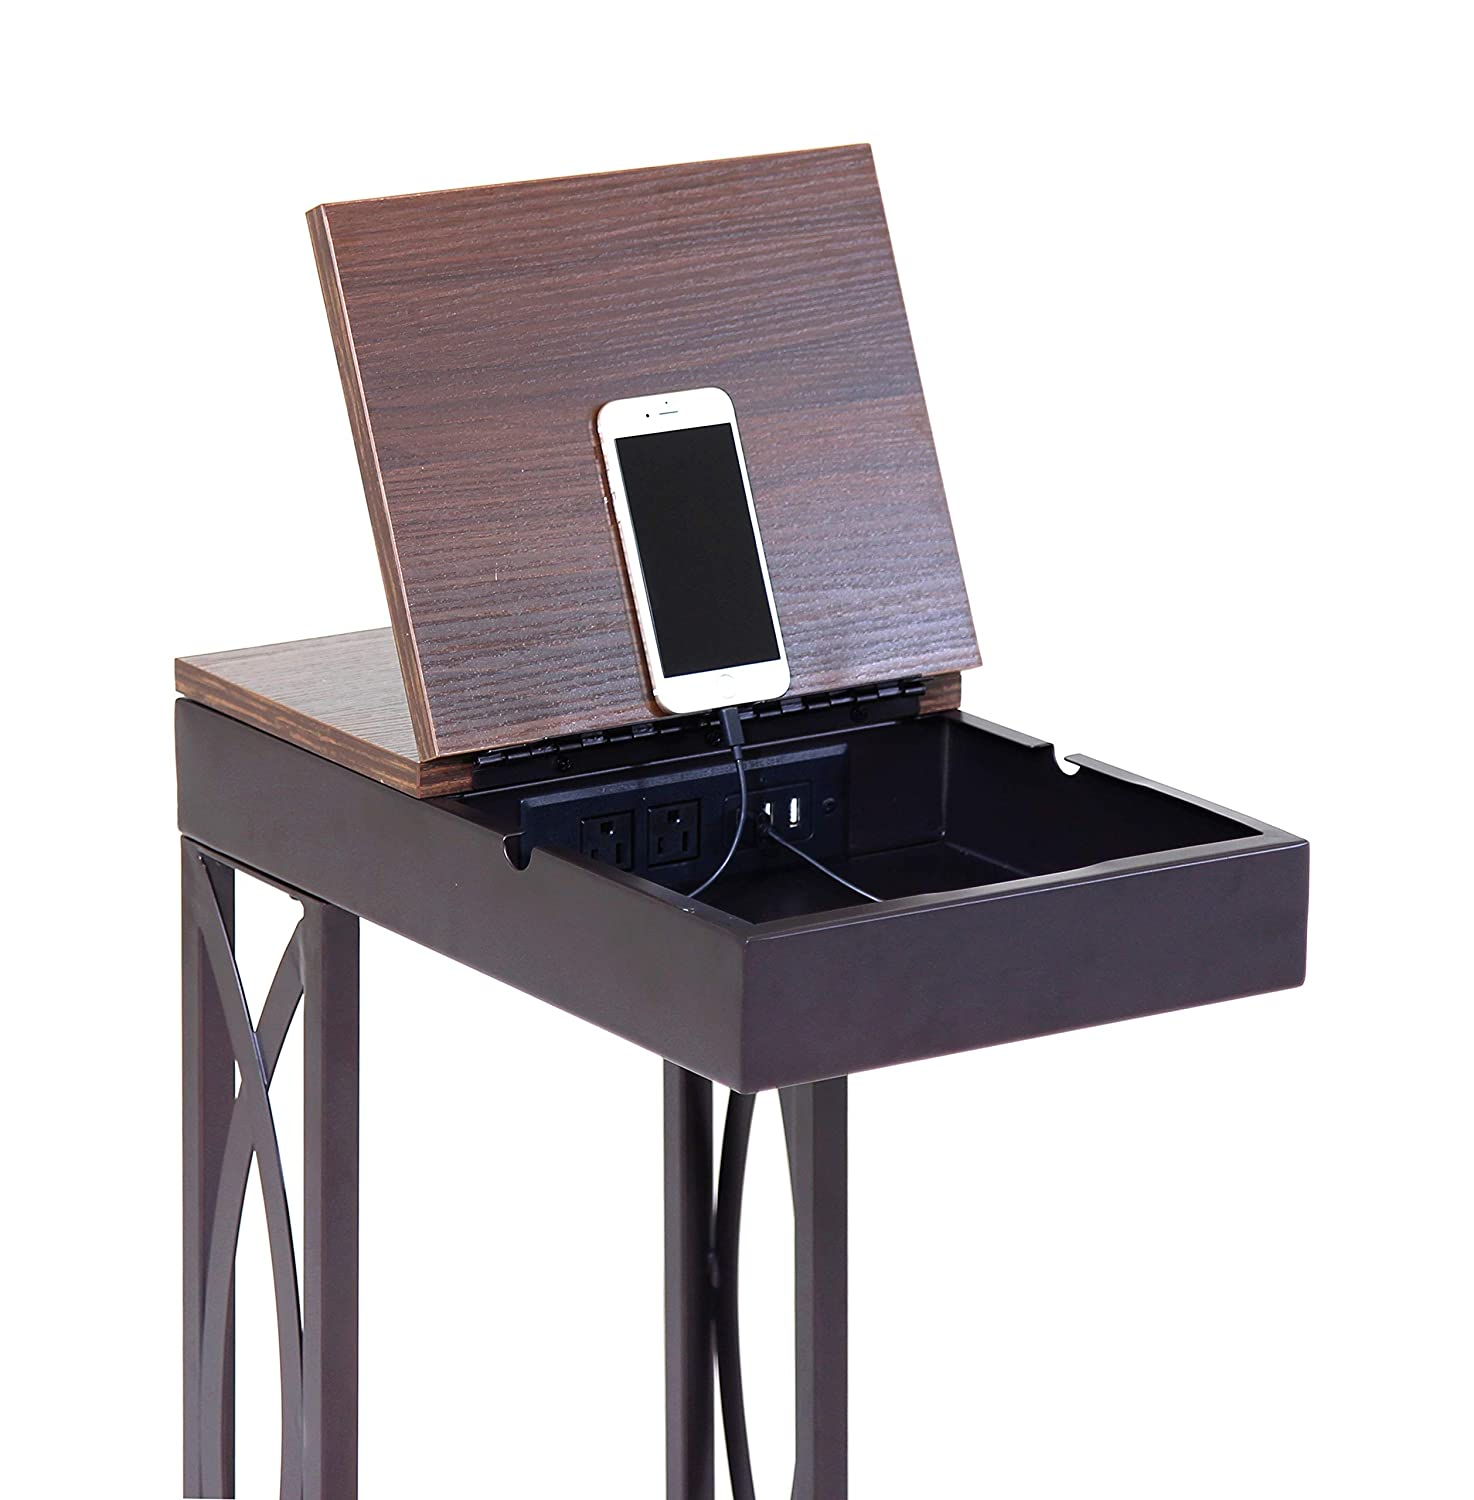 Leisure Space SeeTable – Stash with Device Stand, Charging Station, and Storage Dark Brown Frame Walnut Finish Table Top – C Table End Table Side Table Accent Table